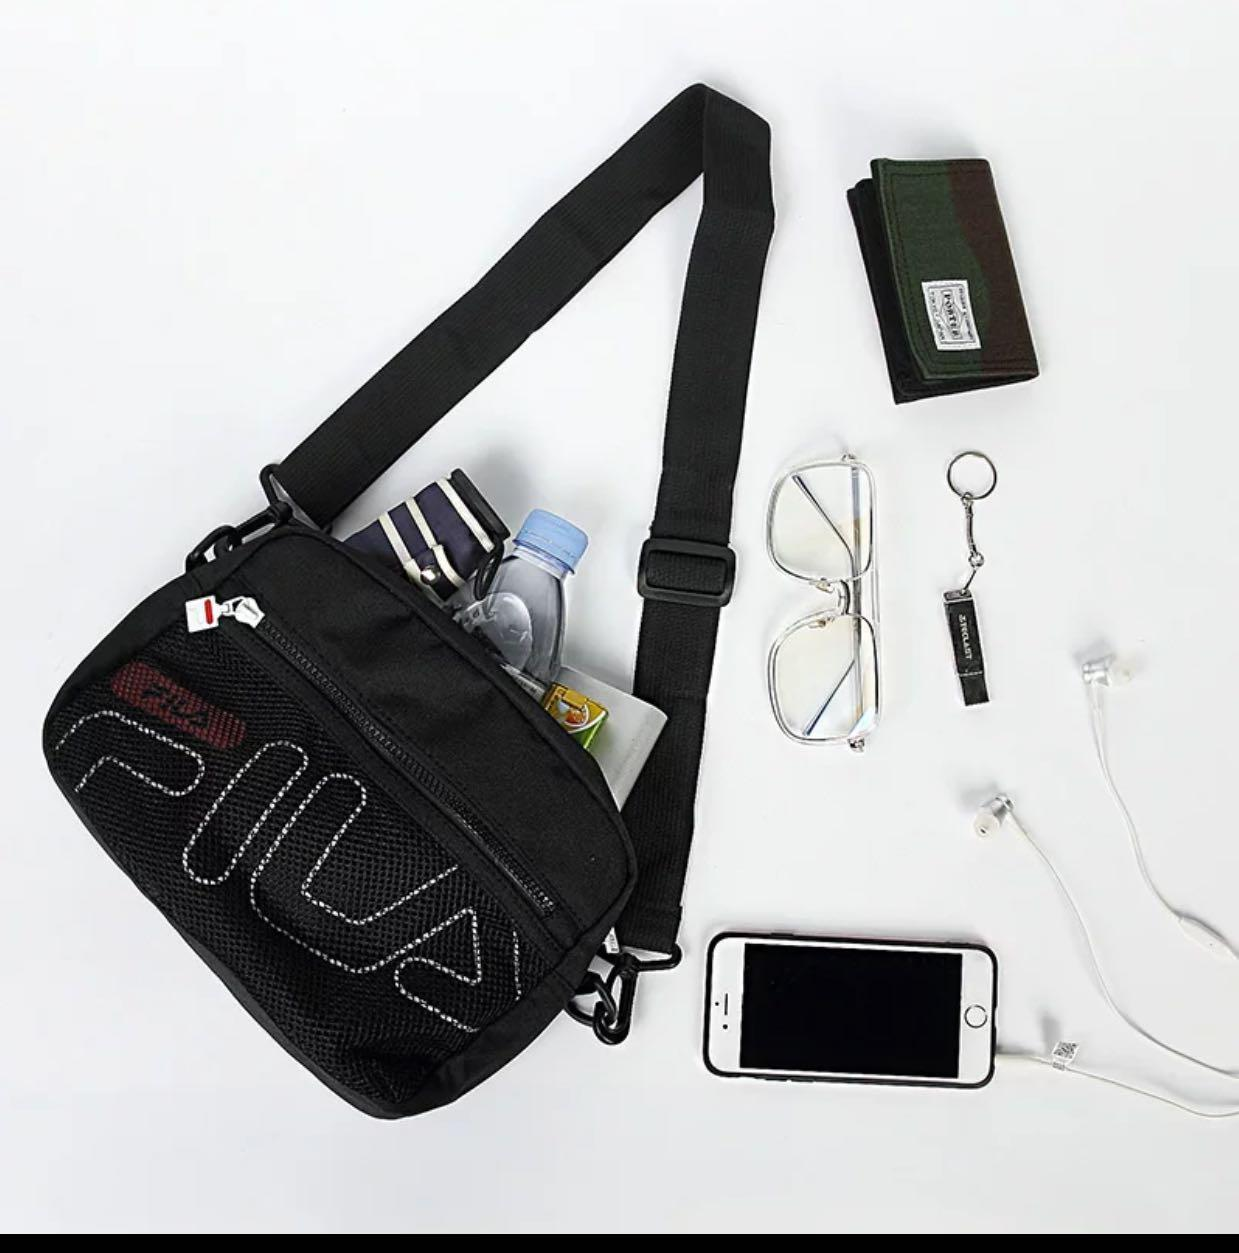 Authentic Fila Sling Bag(Brand new and instocks)